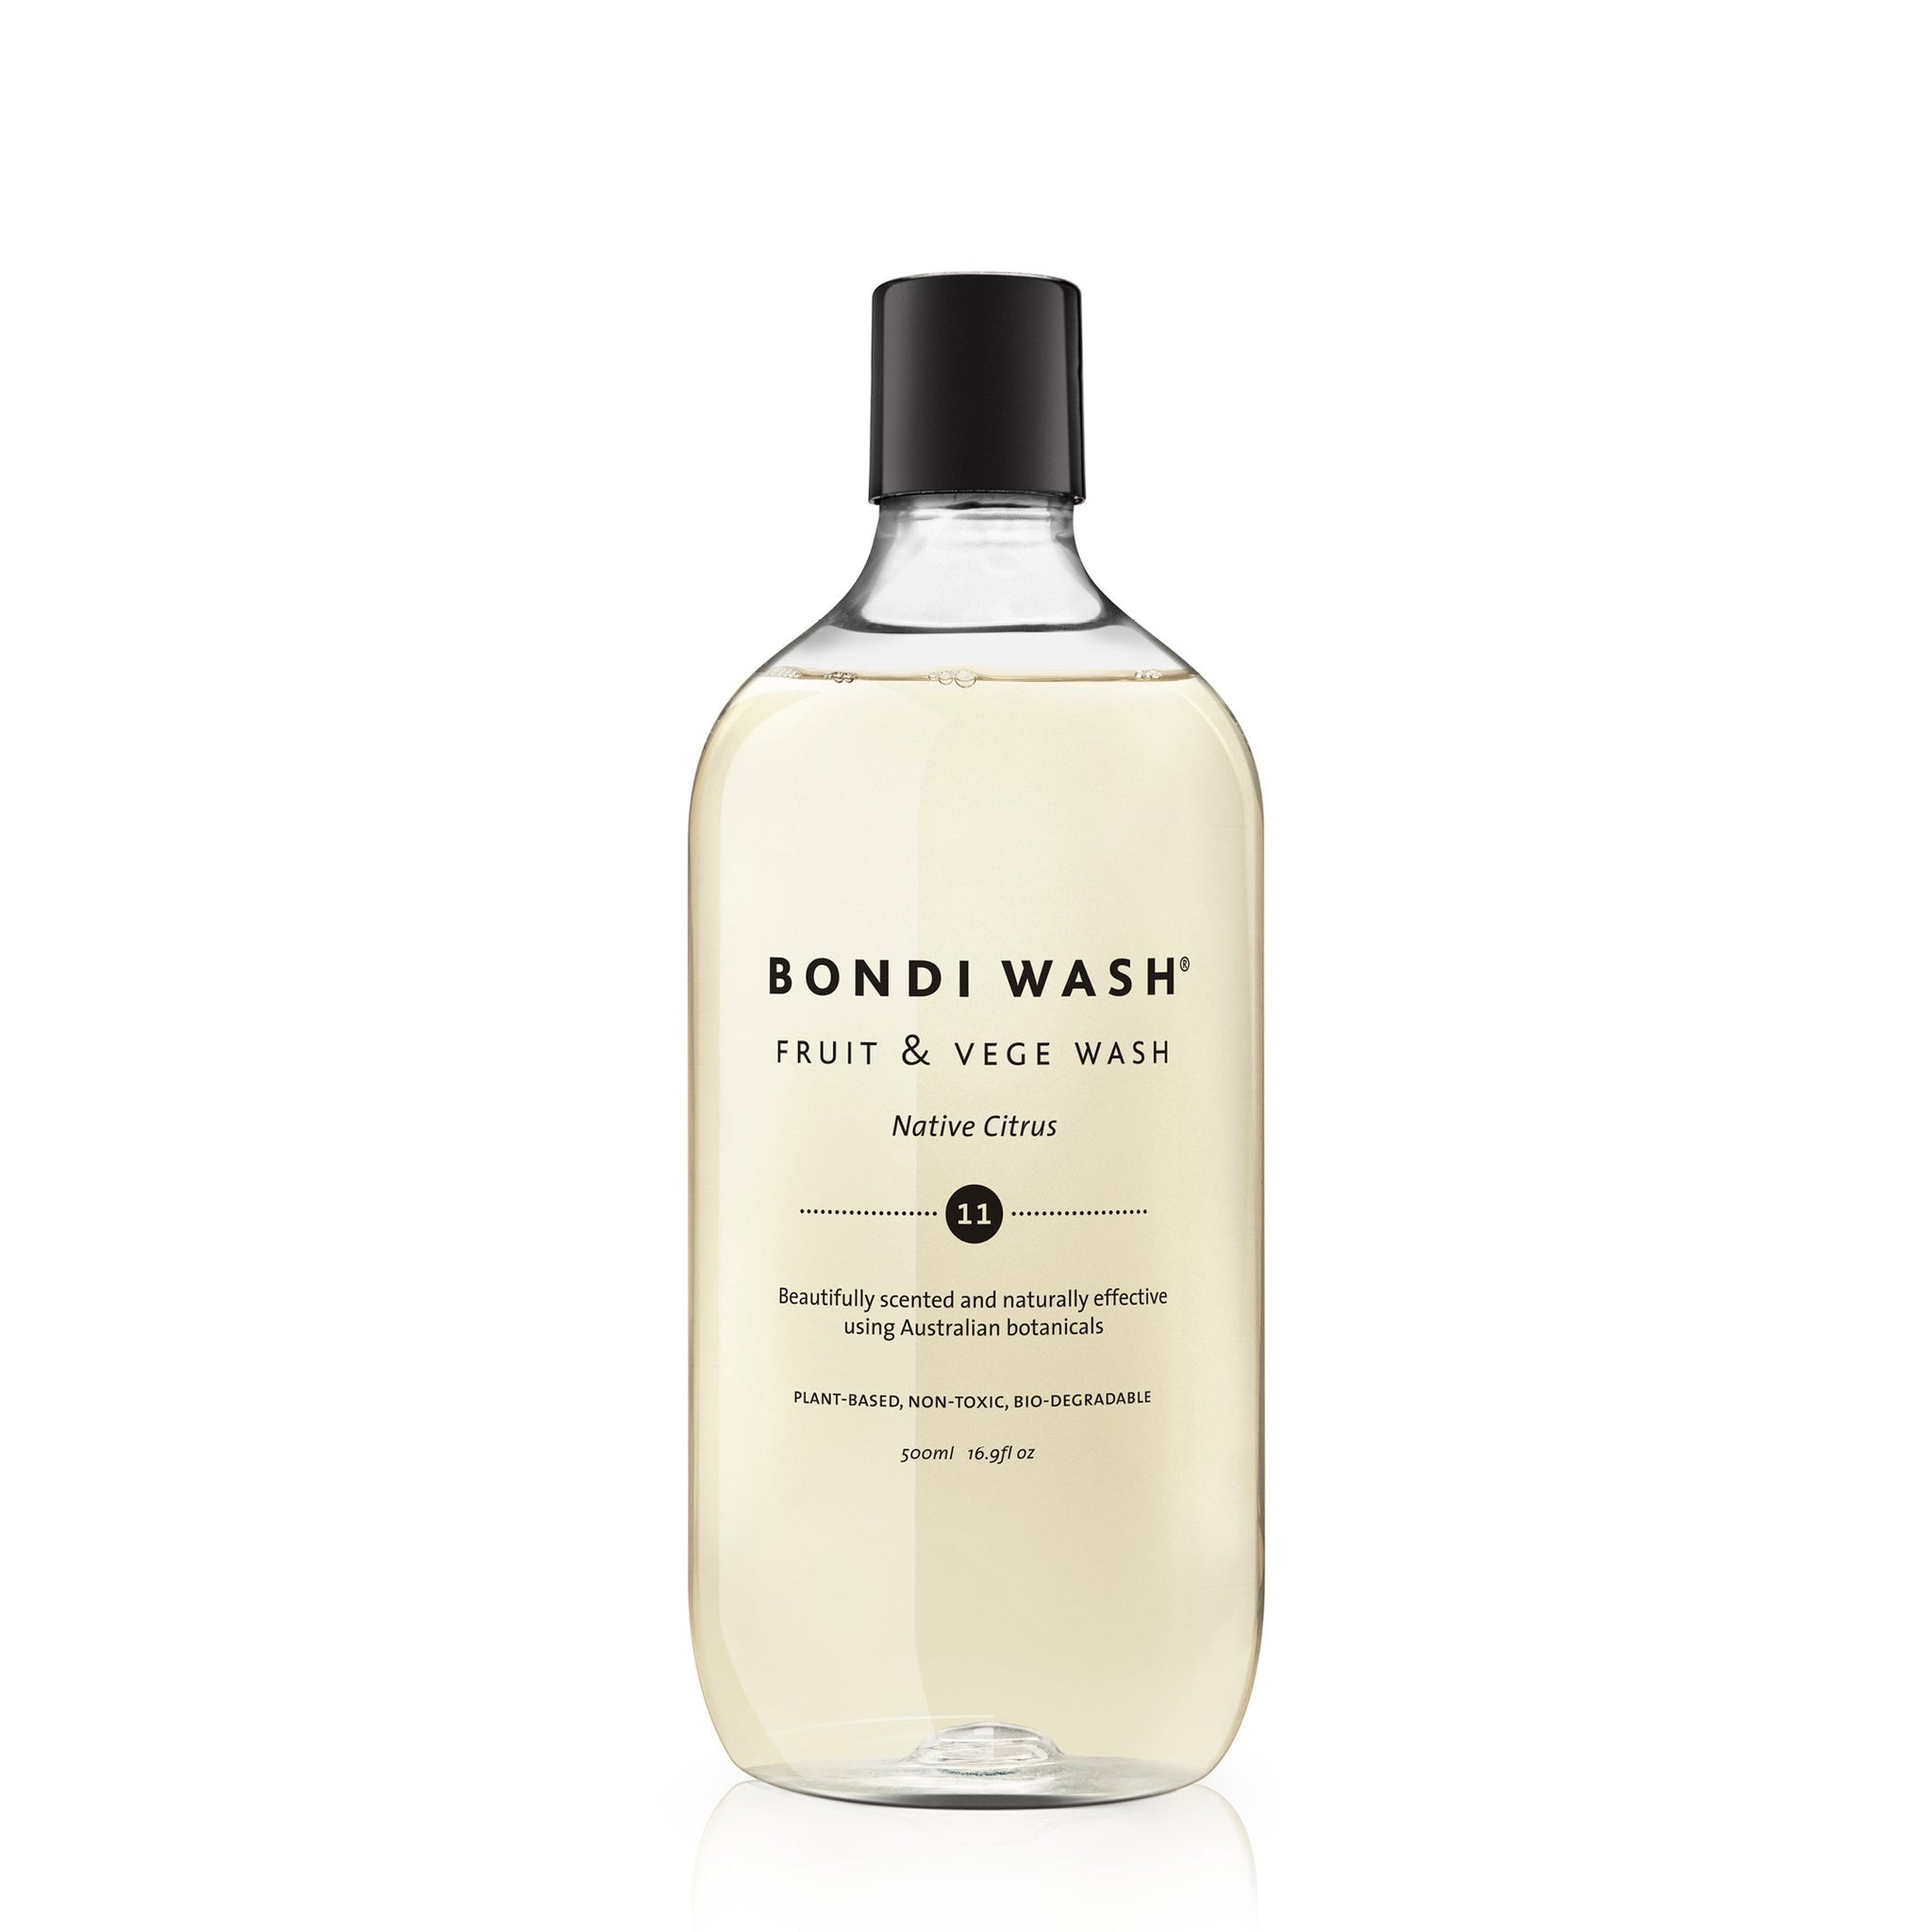 Bondi Wash / Fruit & Vege Wash - Native Citrus